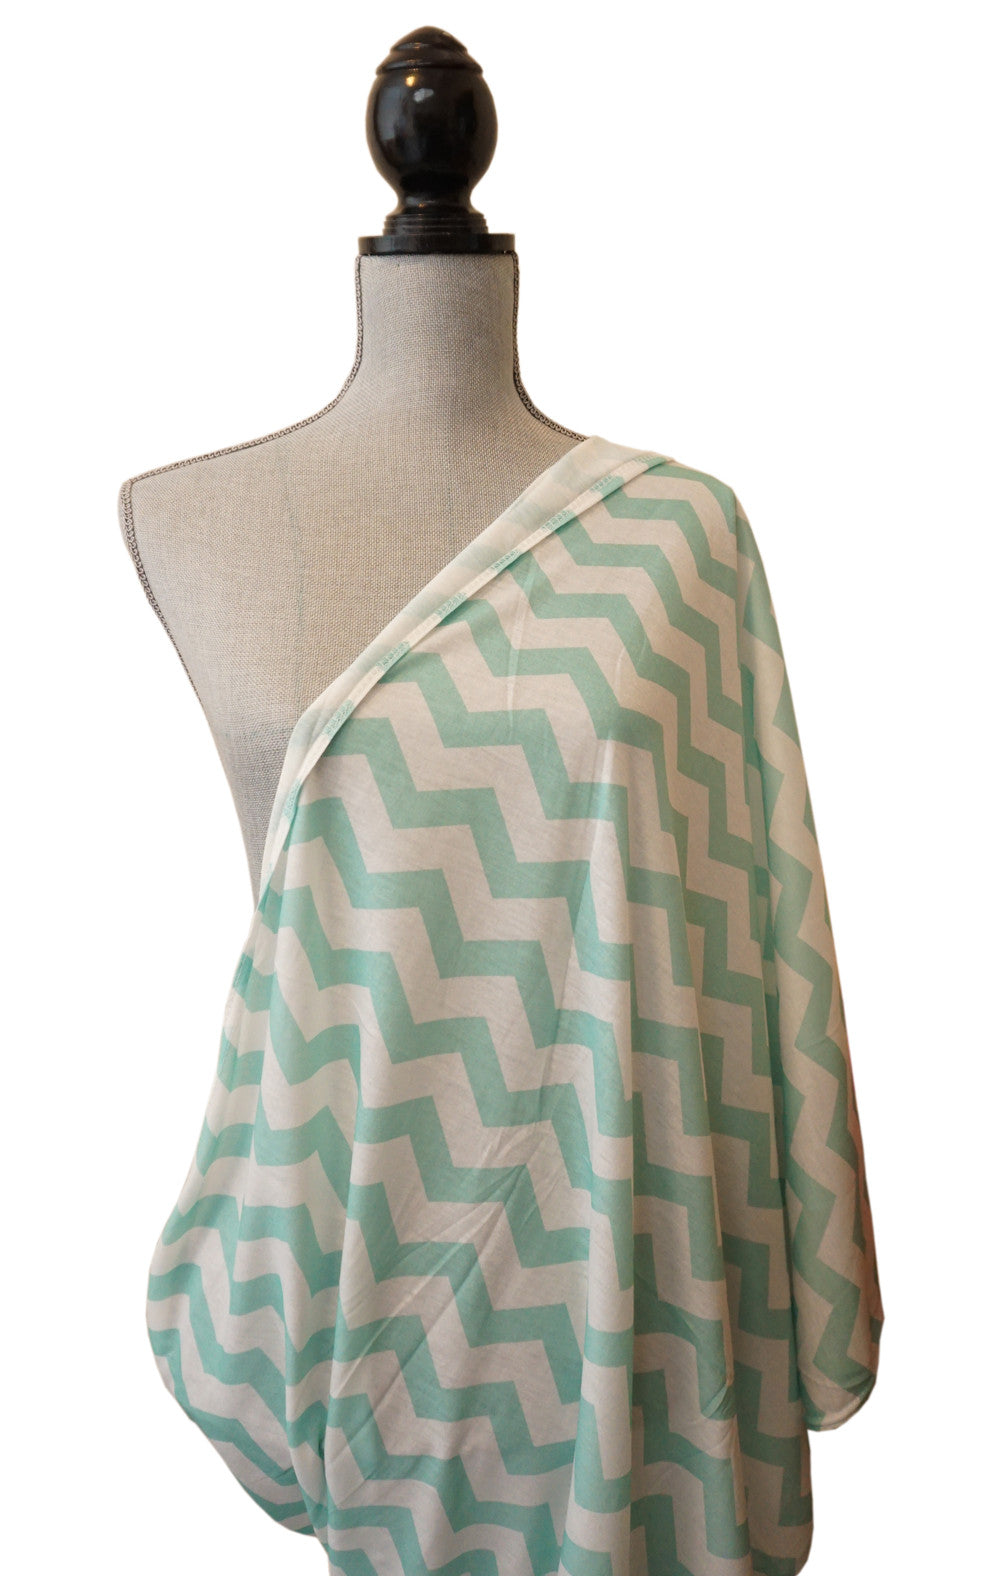 Nursing Cover - Breastfeeding cover Infinity Scarf Chevron Pattern - Mint - scarftopia